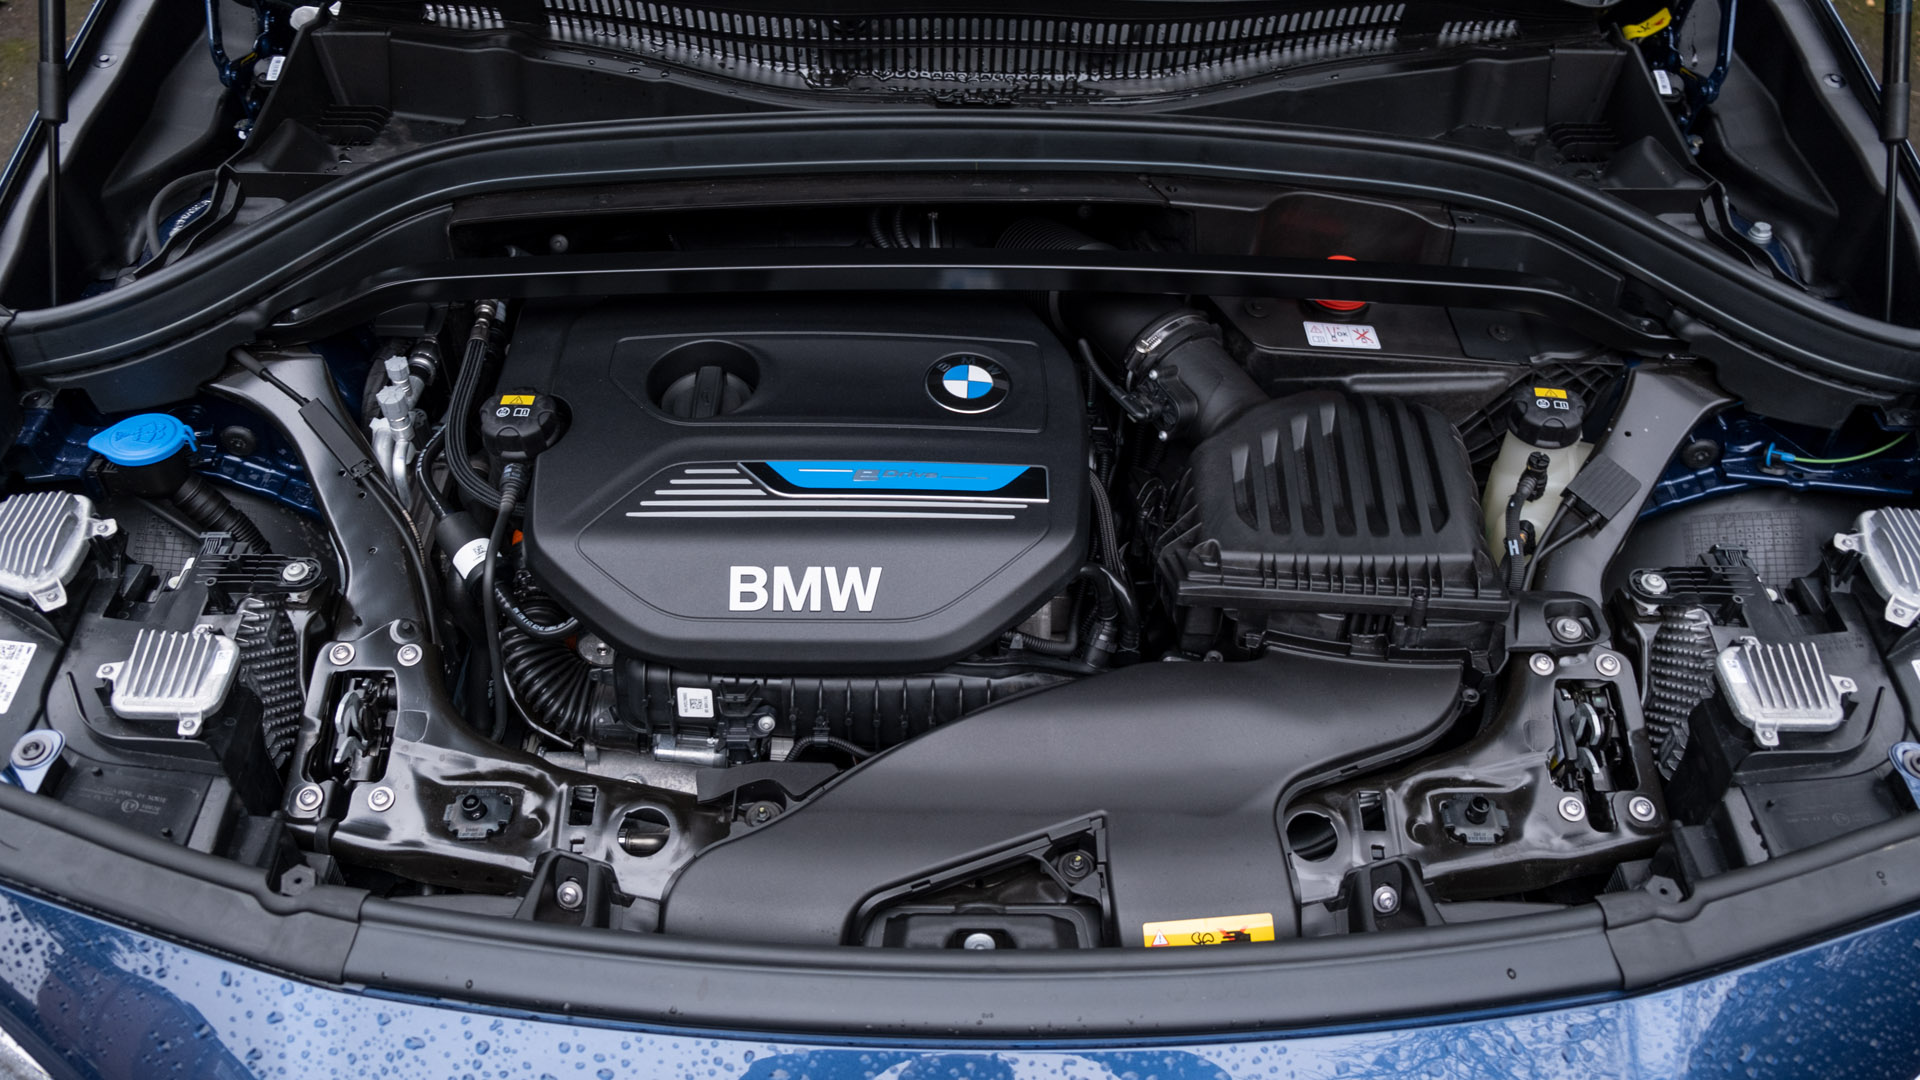 BMW X2 xDrive25e engine